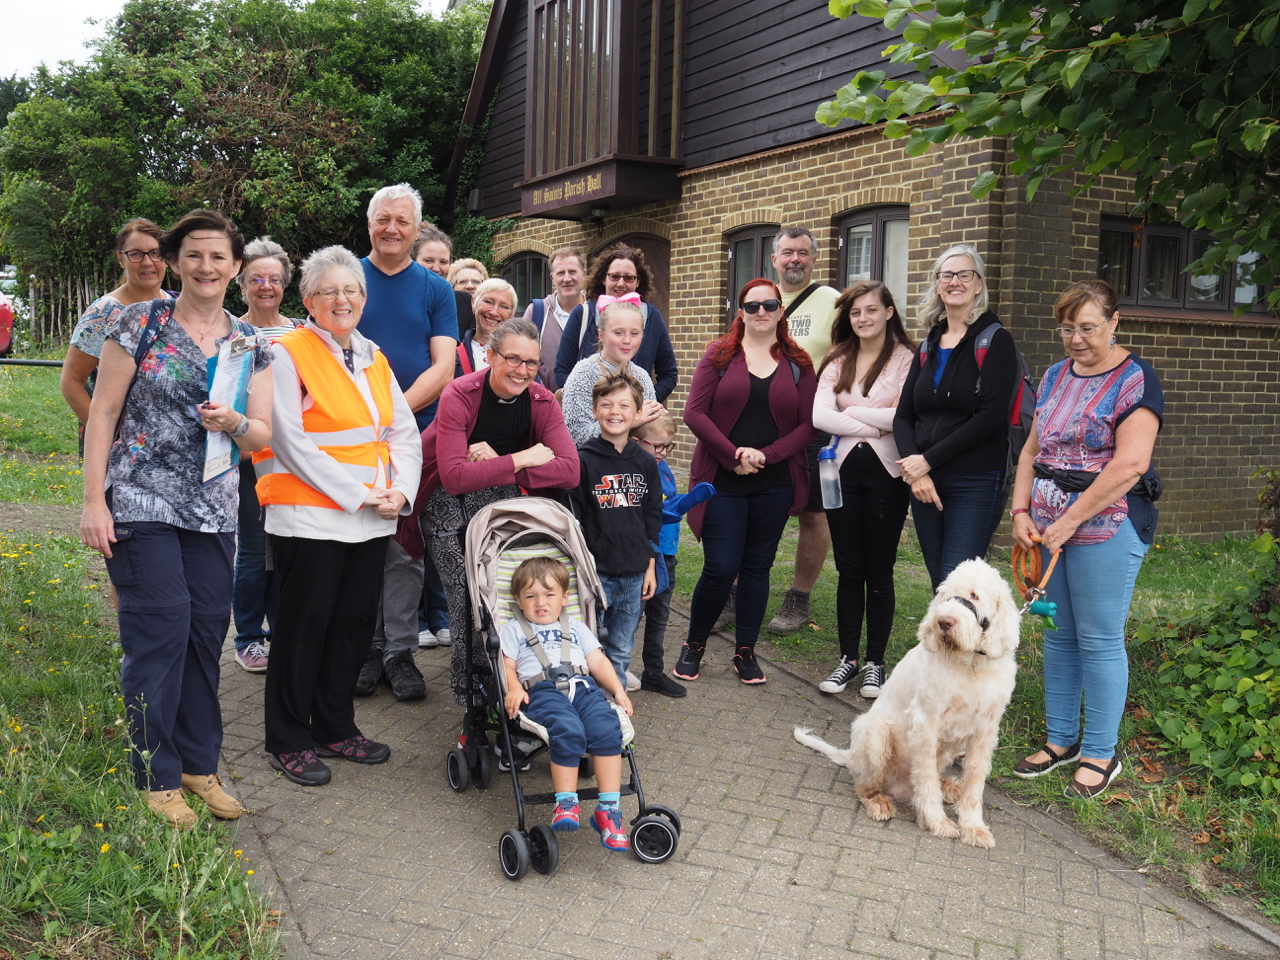 We Were Taking Our Easter Walk In Owen >> Monthly Parish Walk All Saints Frindsbury With Upnor And Chattenden